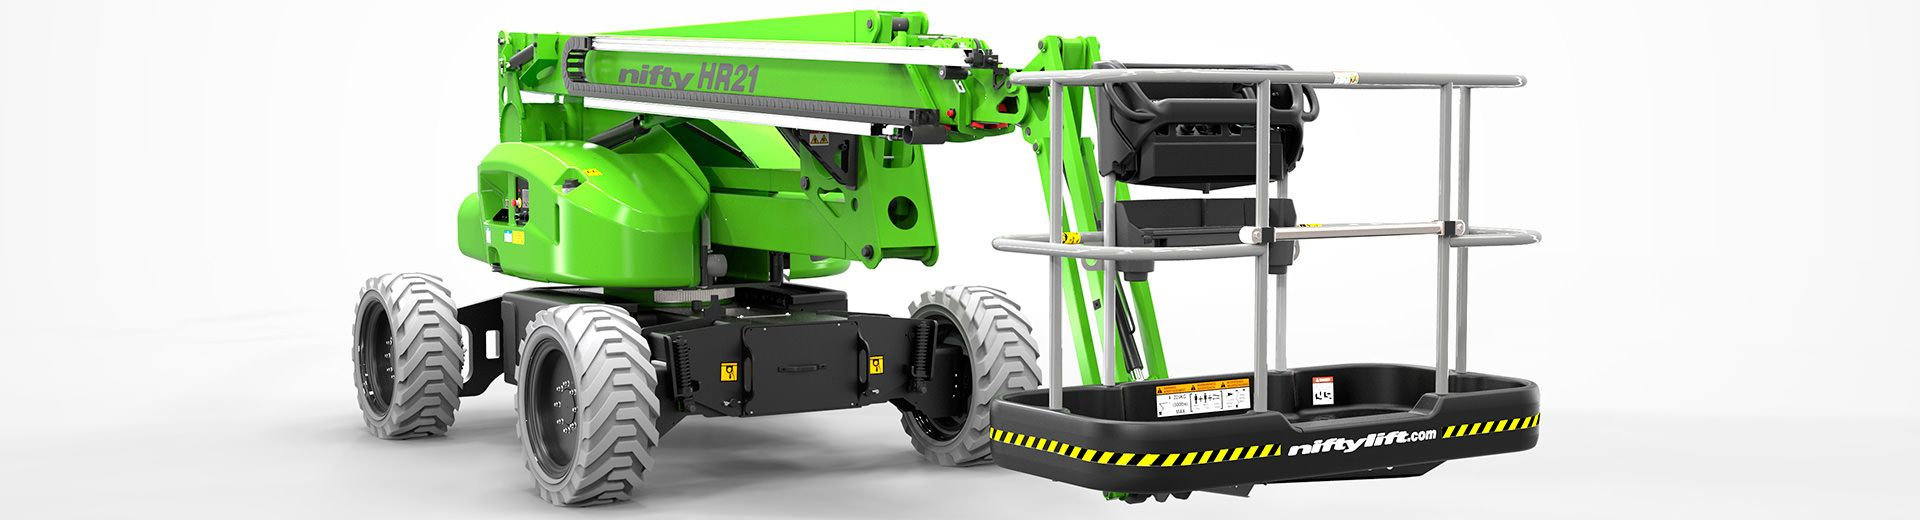 Mobile Elevating Work Platforms | Buy or Rent Today | Niftylift